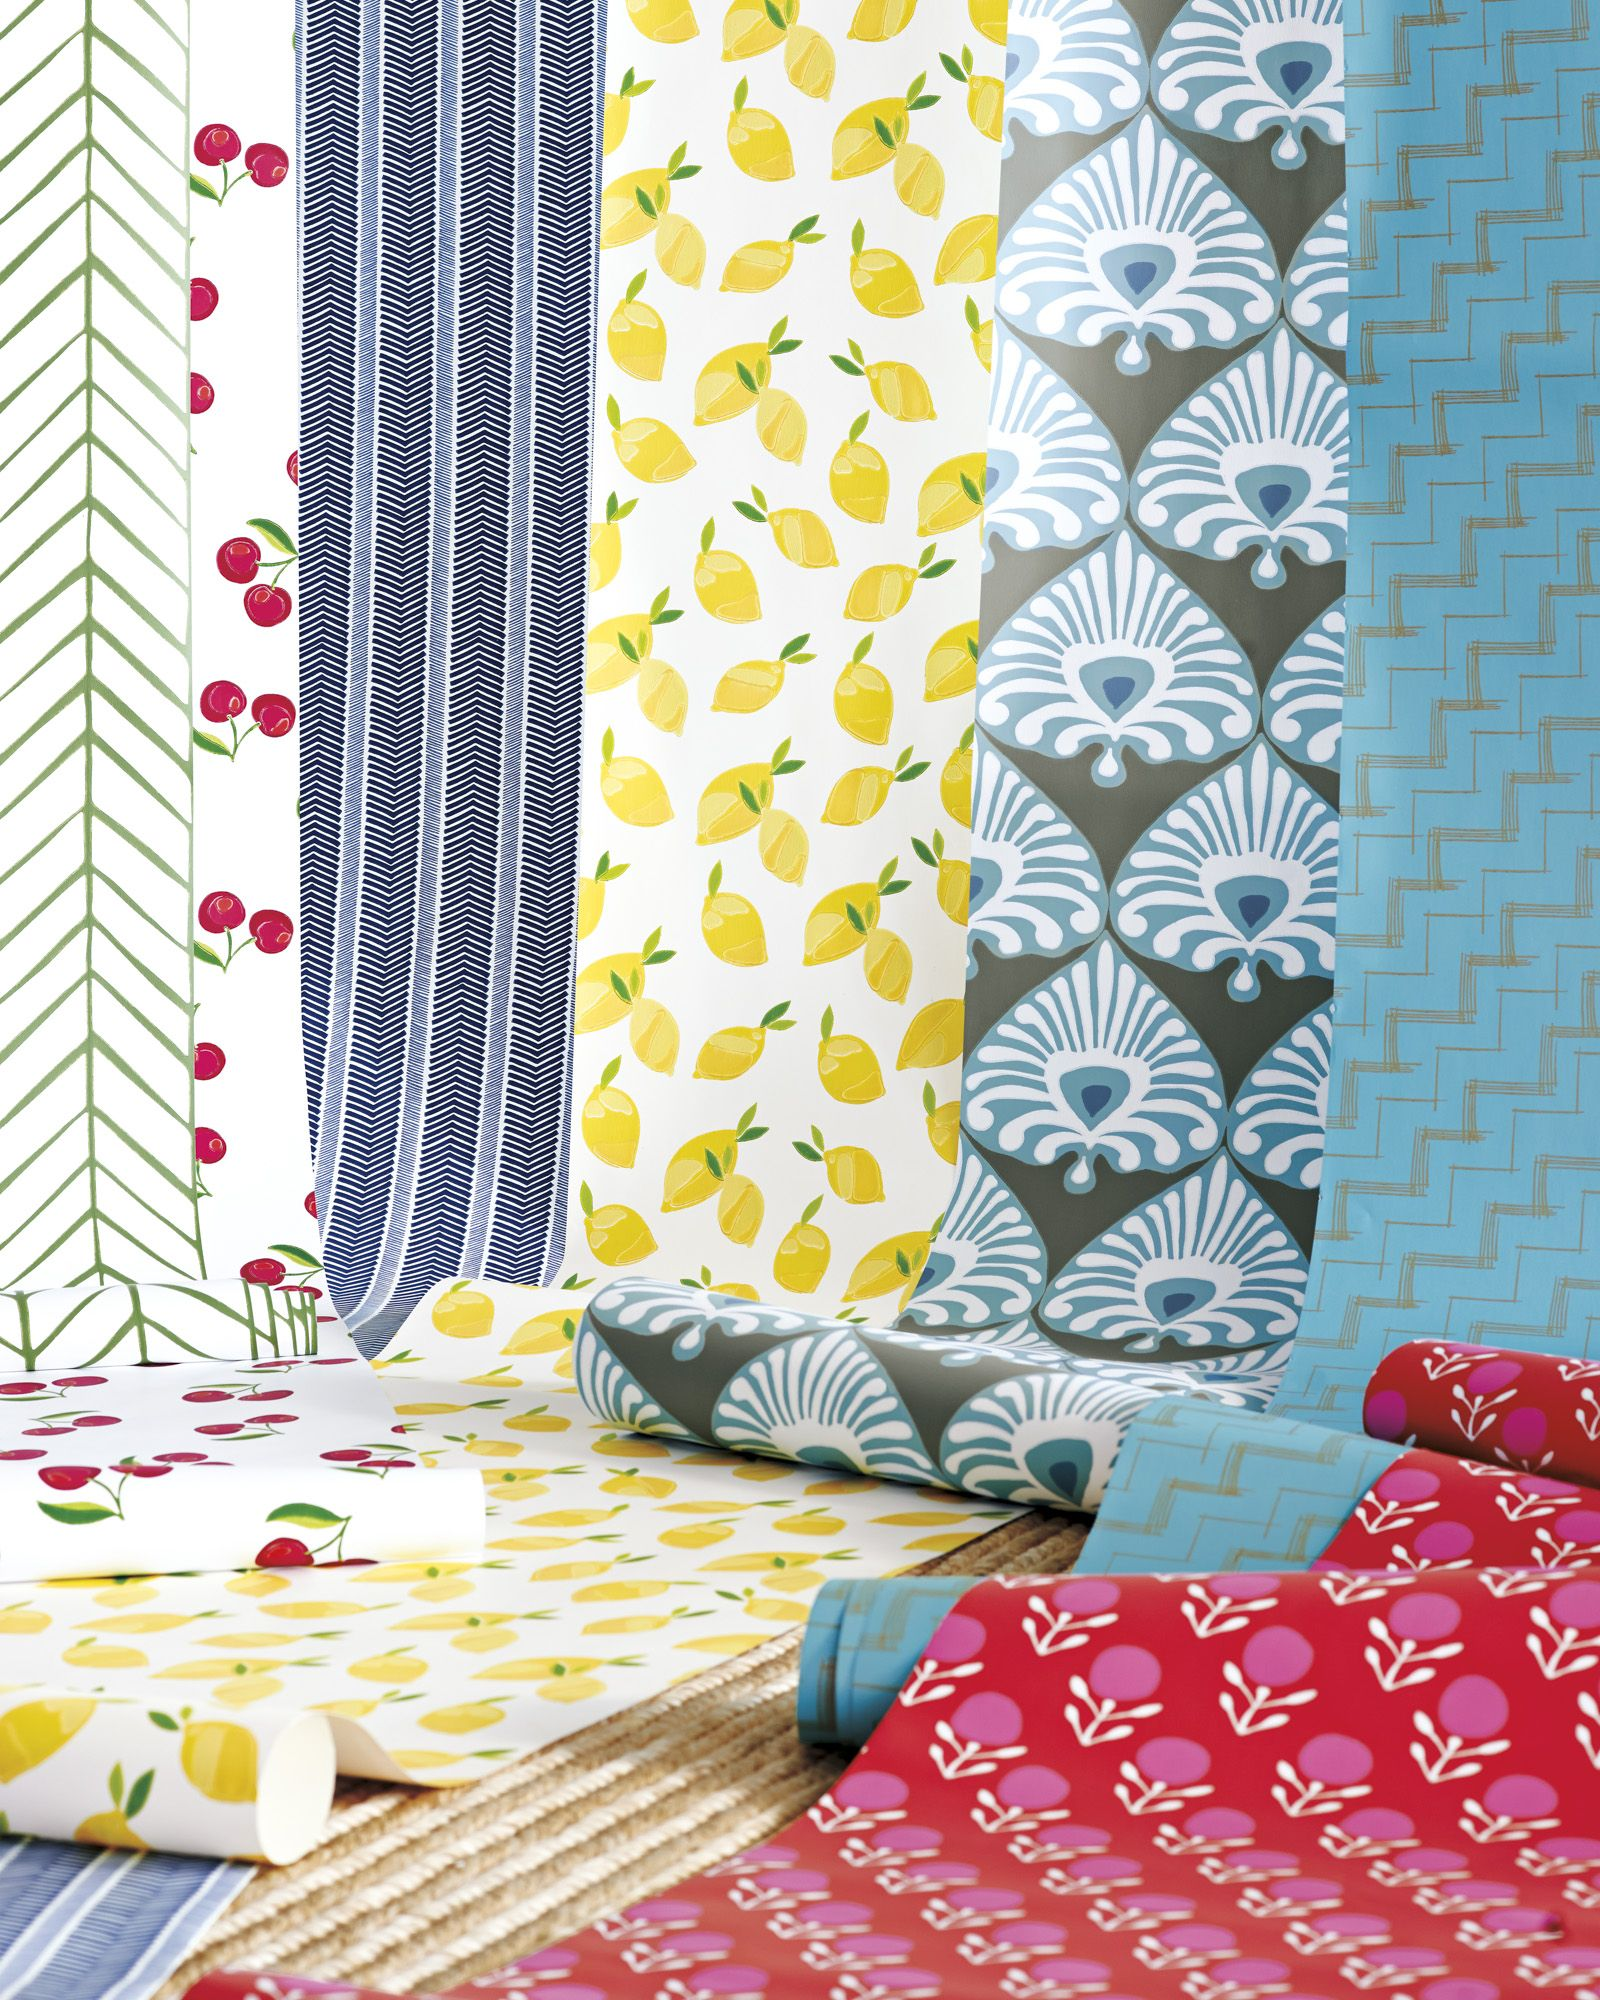 Feather Wallpaper Feather wallpaper, Fabric wallpaper